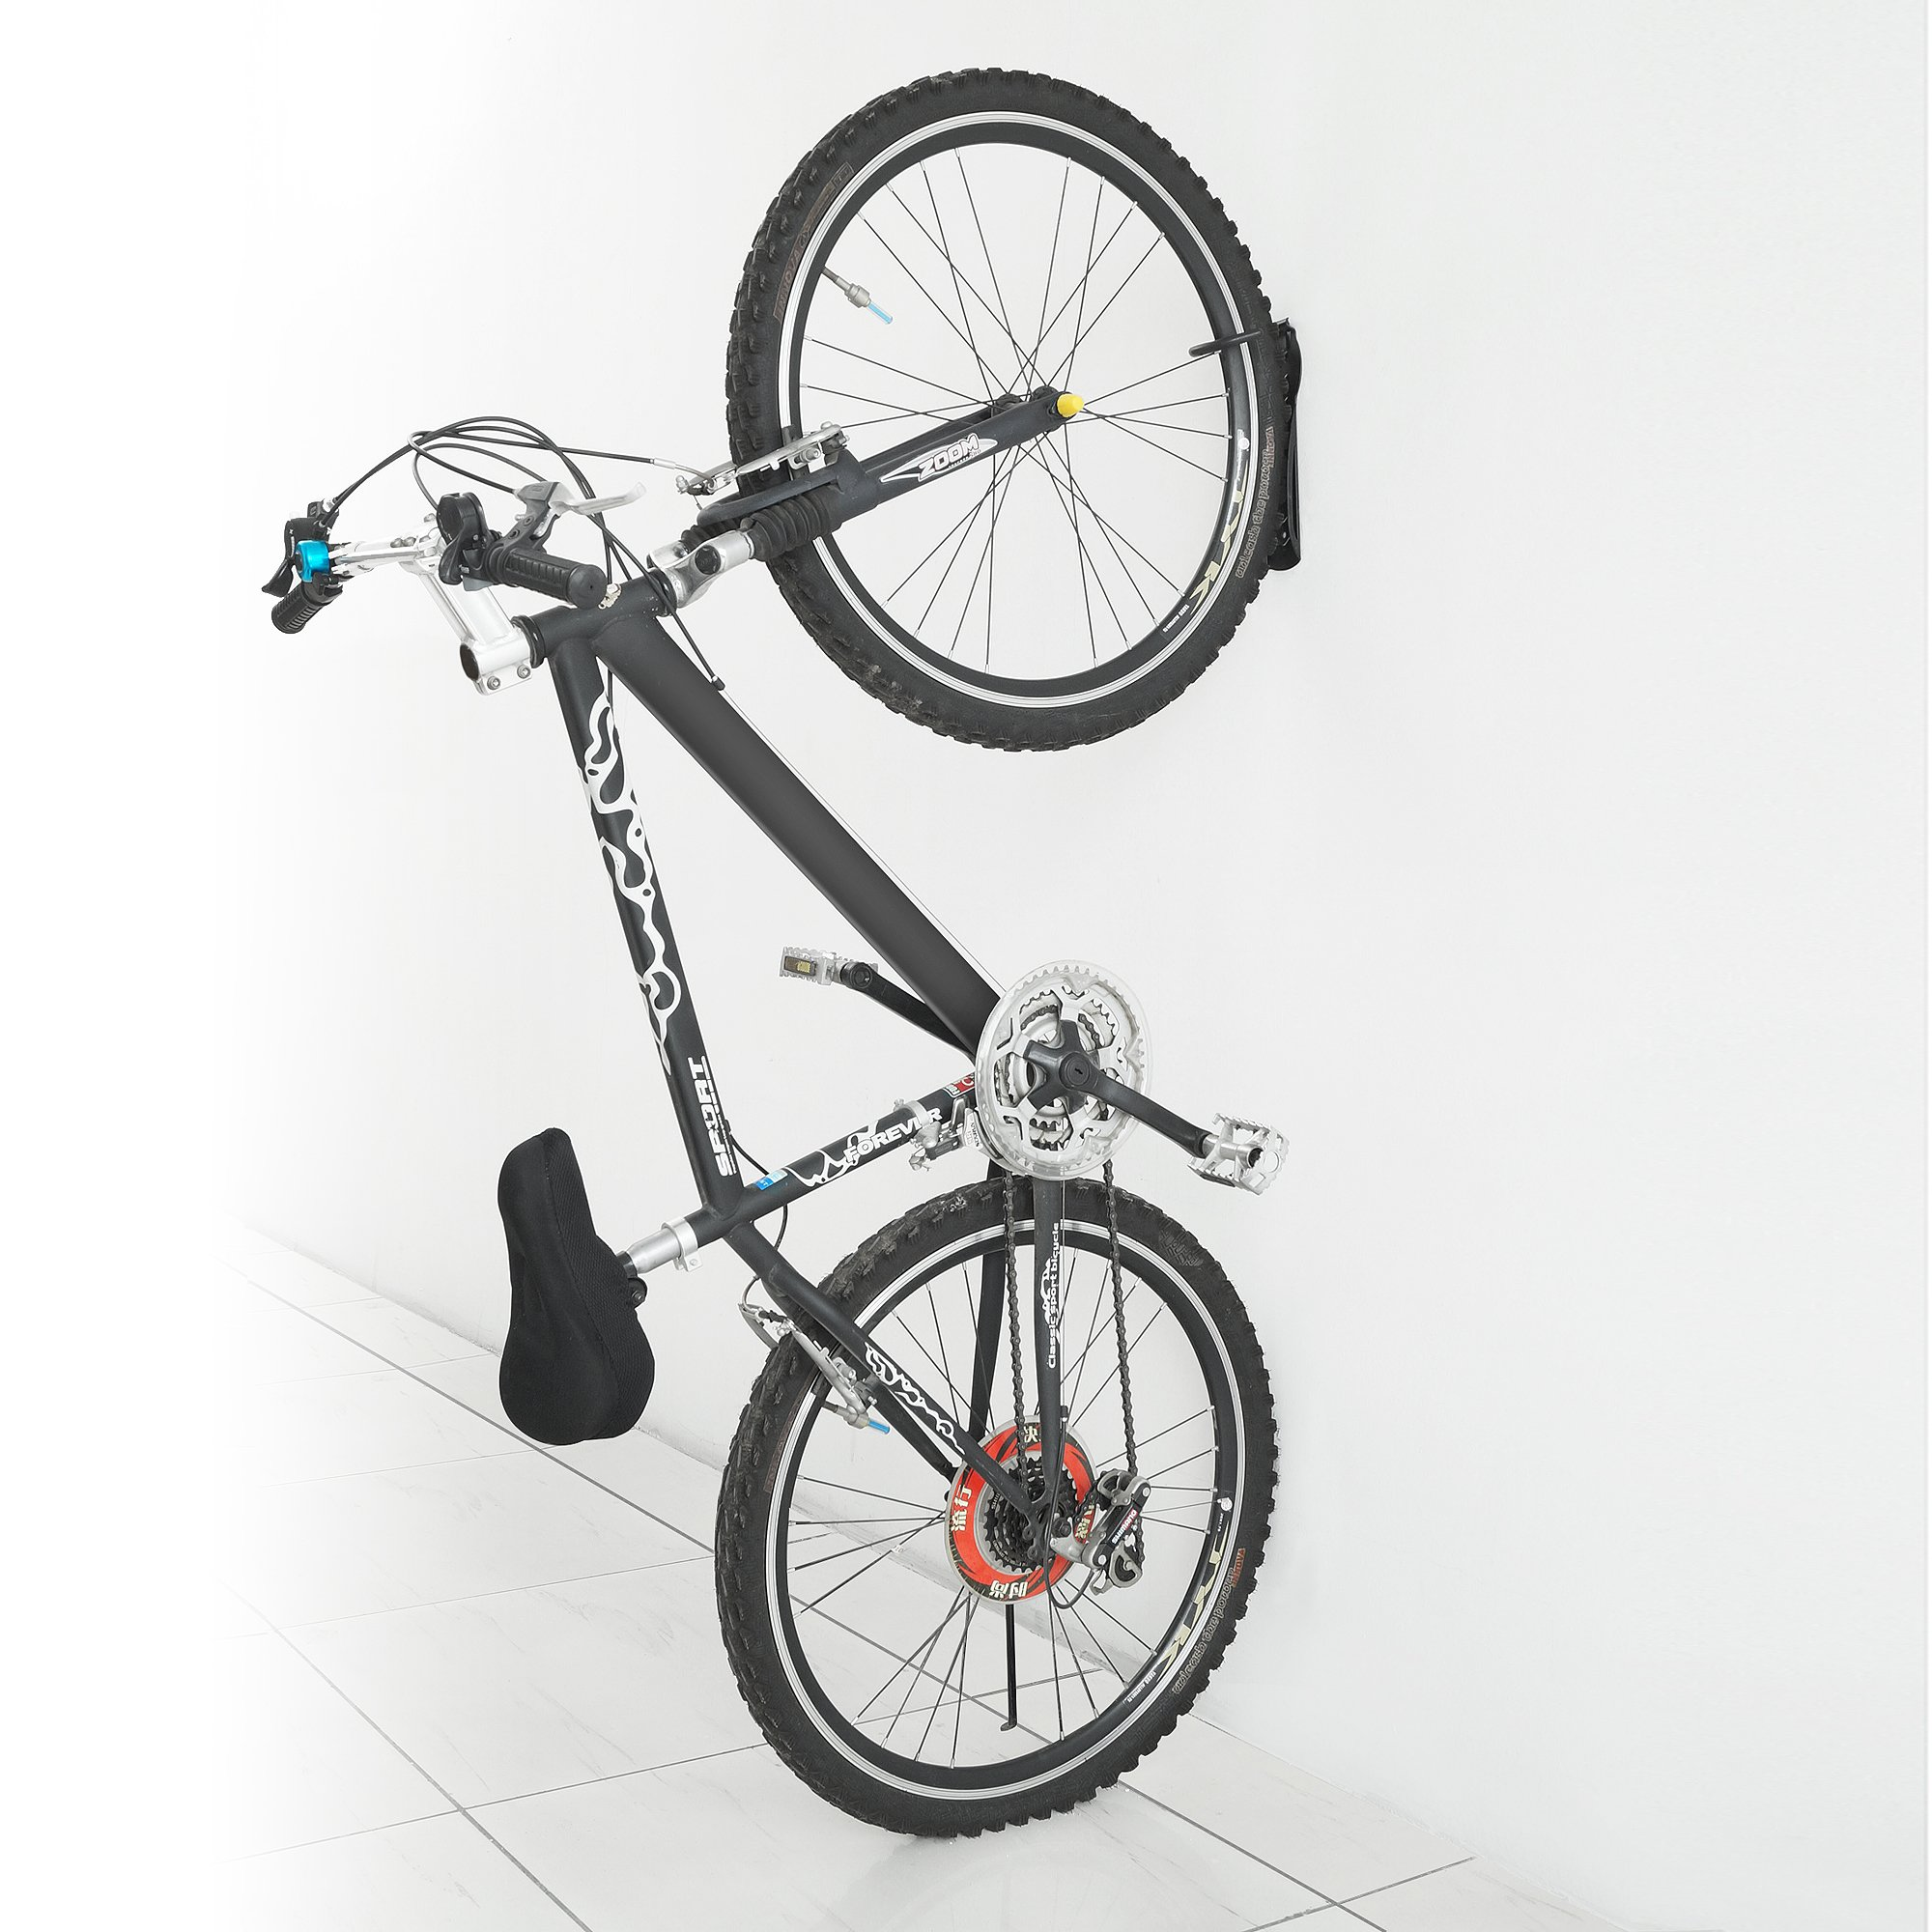 Bike Lane Products Bicycle Wall Hanger Bike Storage System for Garage or Shed Vertical Bicycle Storage